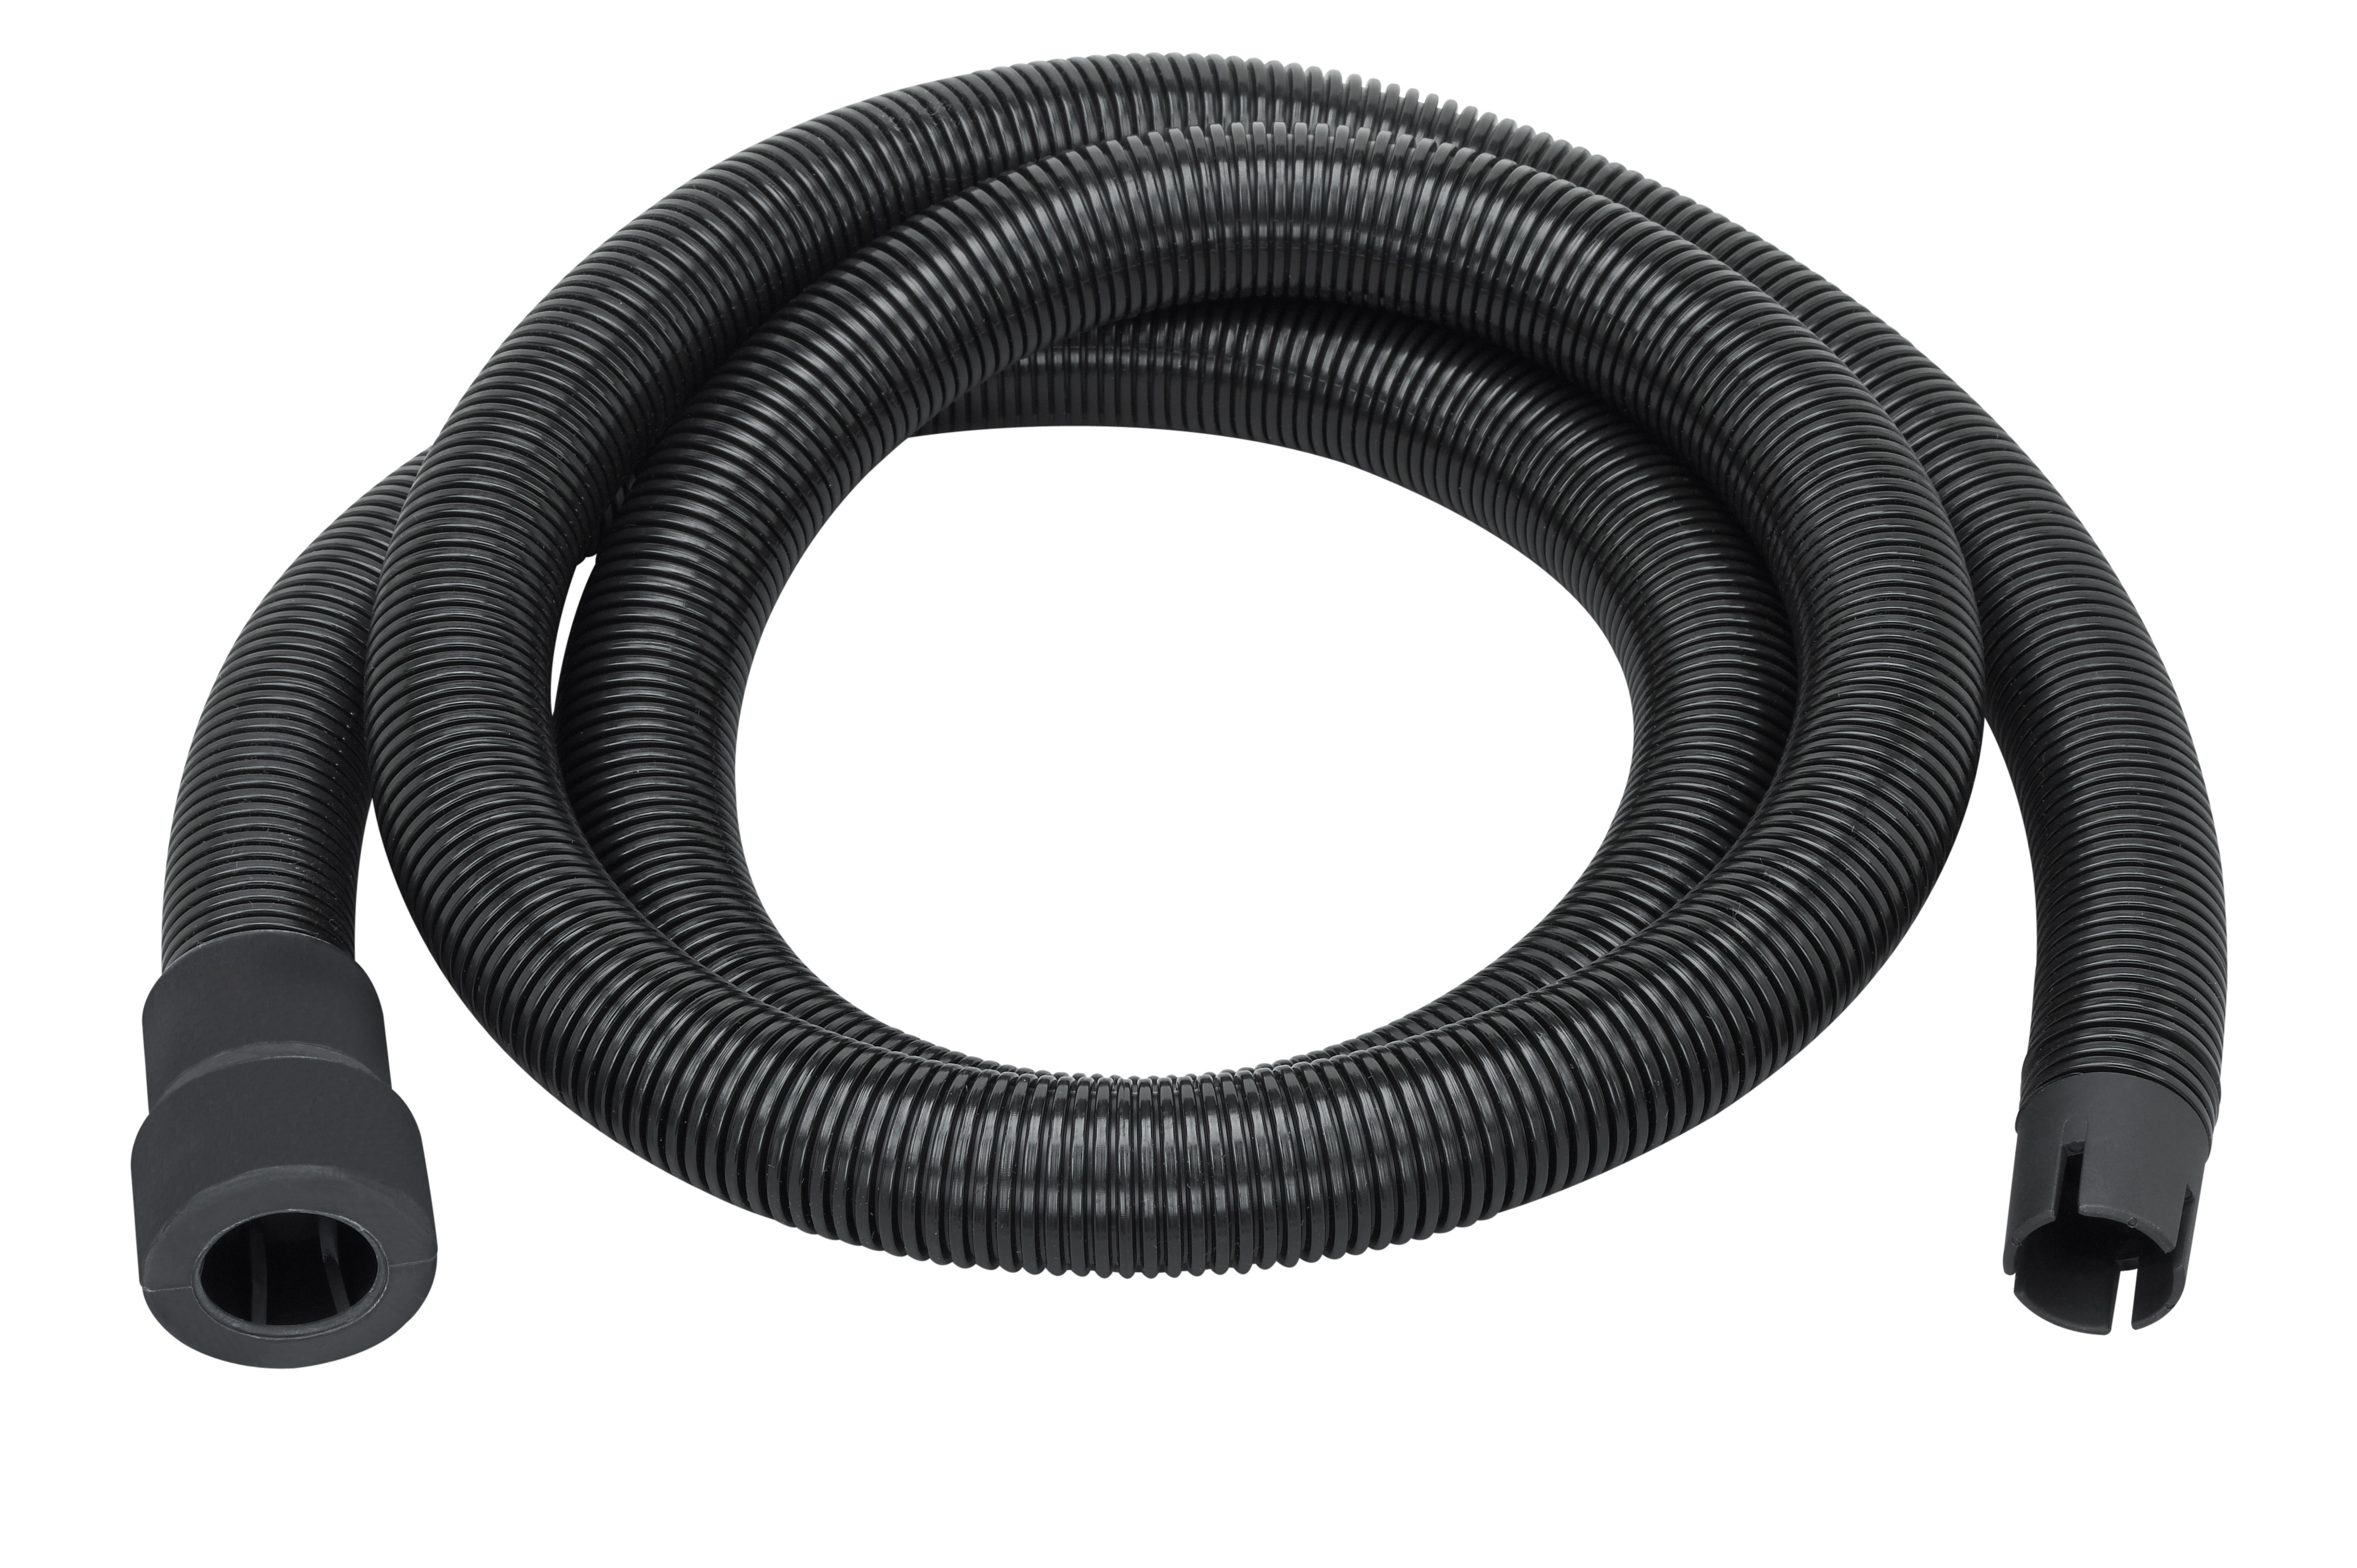 Milwaukee® 48-09-1030 Vacuum Hose, For Use With 6268-21, 6266-22 and 6276-21 Heavy Duty T-Shank Orbital Jig Saw